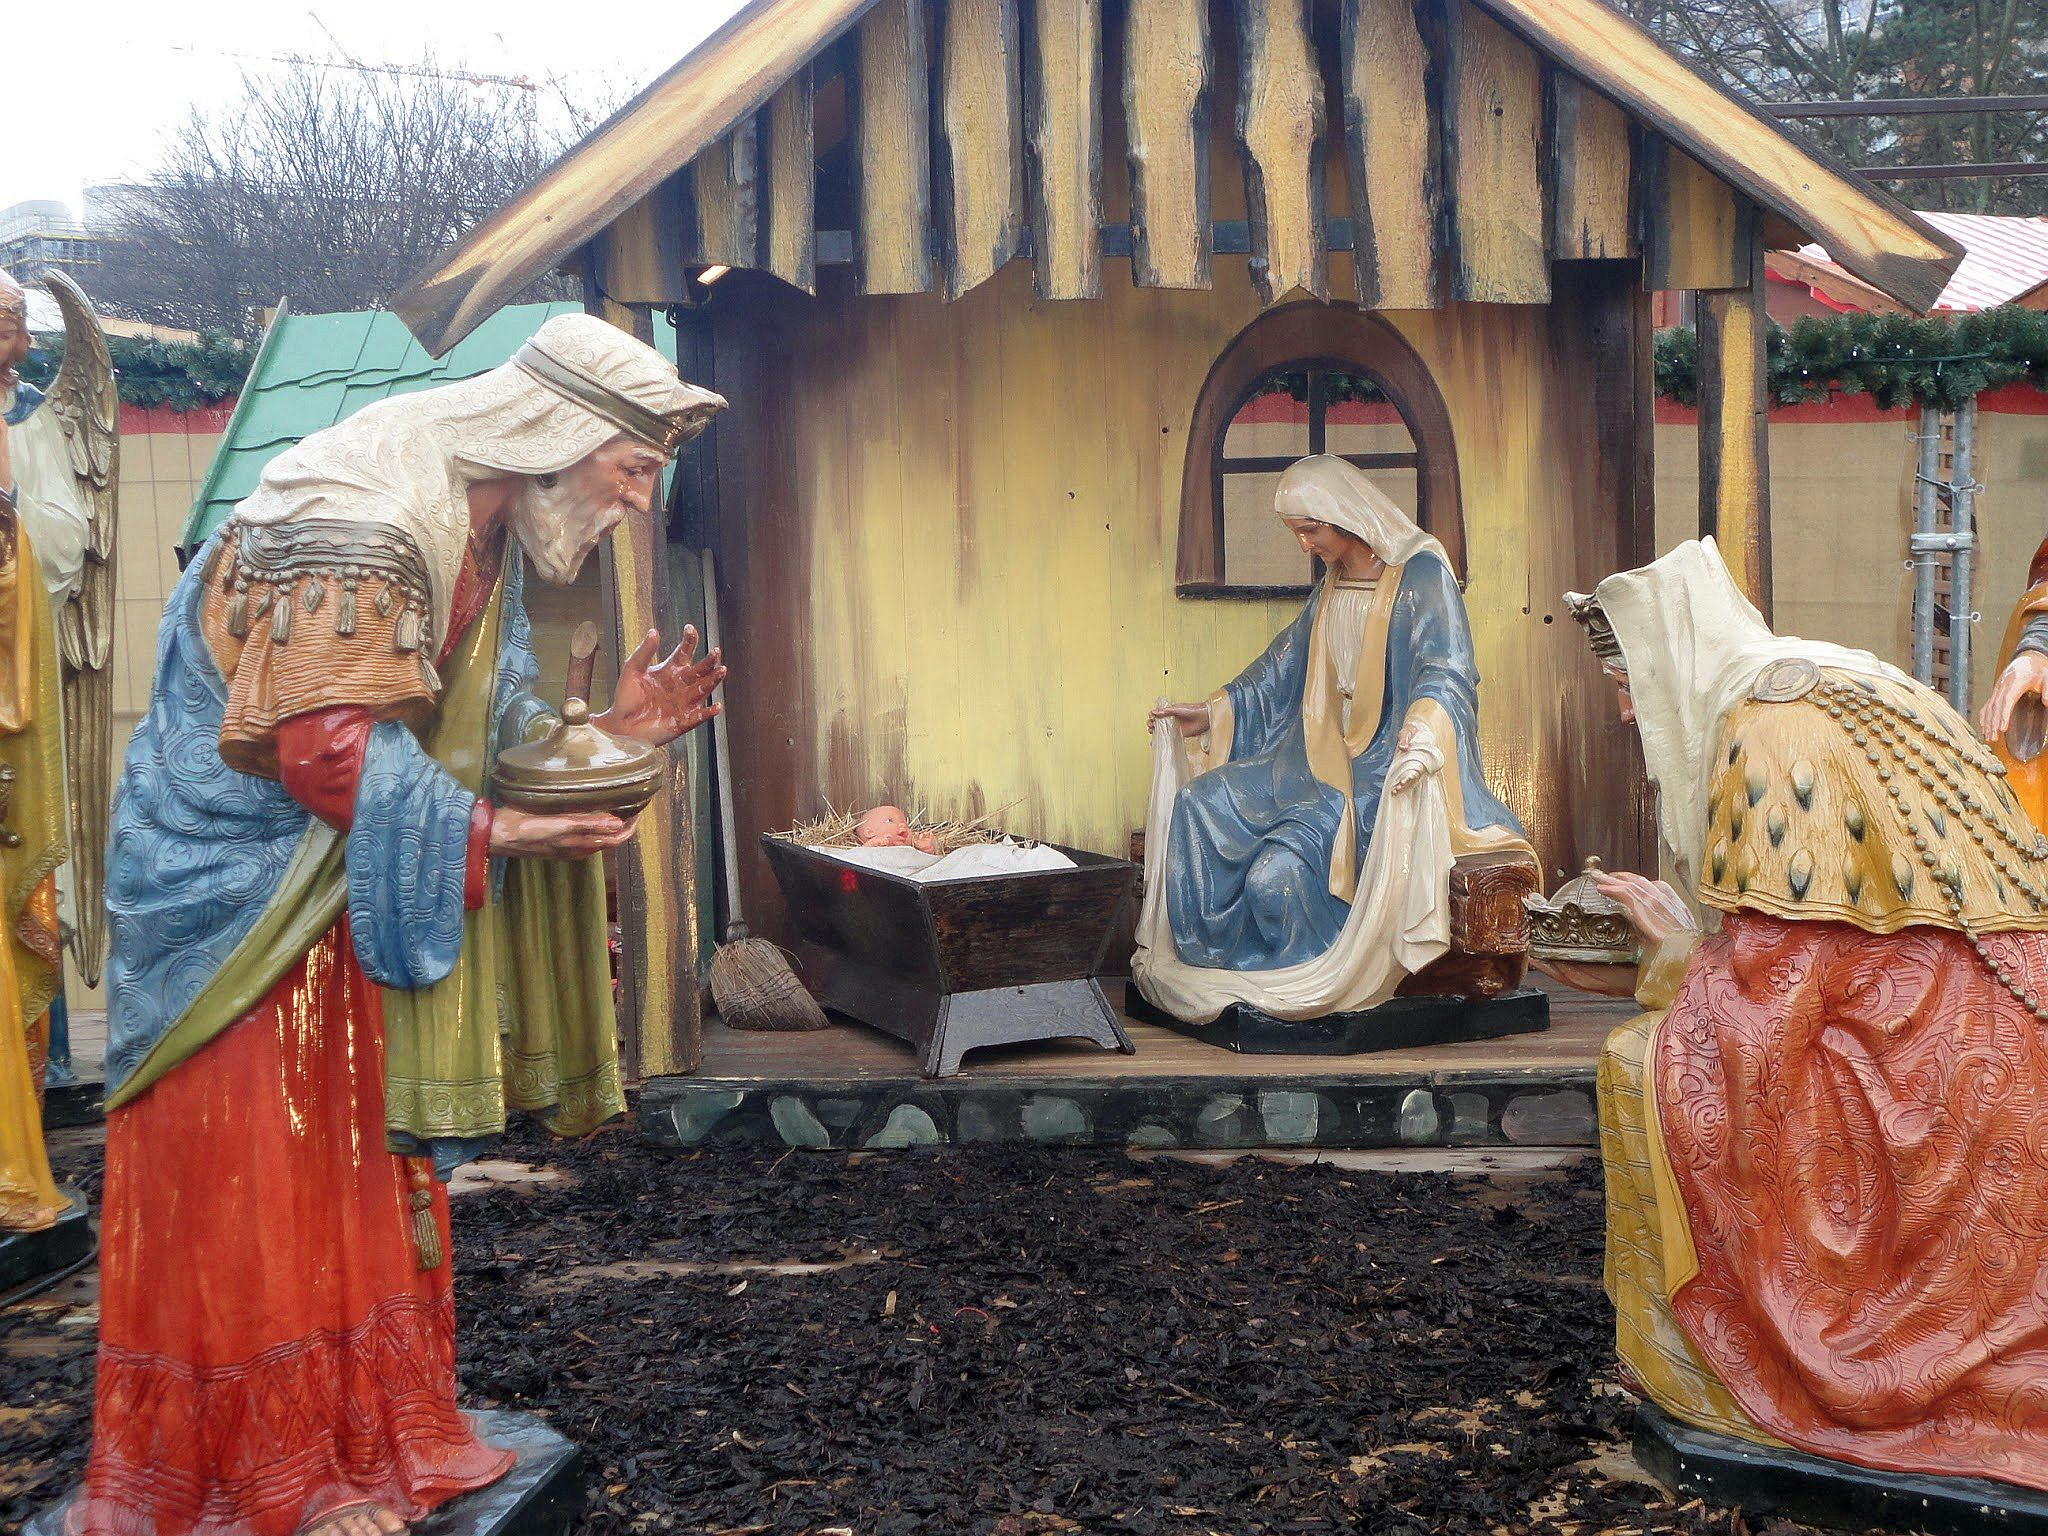 Nativity Scene. Christmas Market, Berlin, Germany